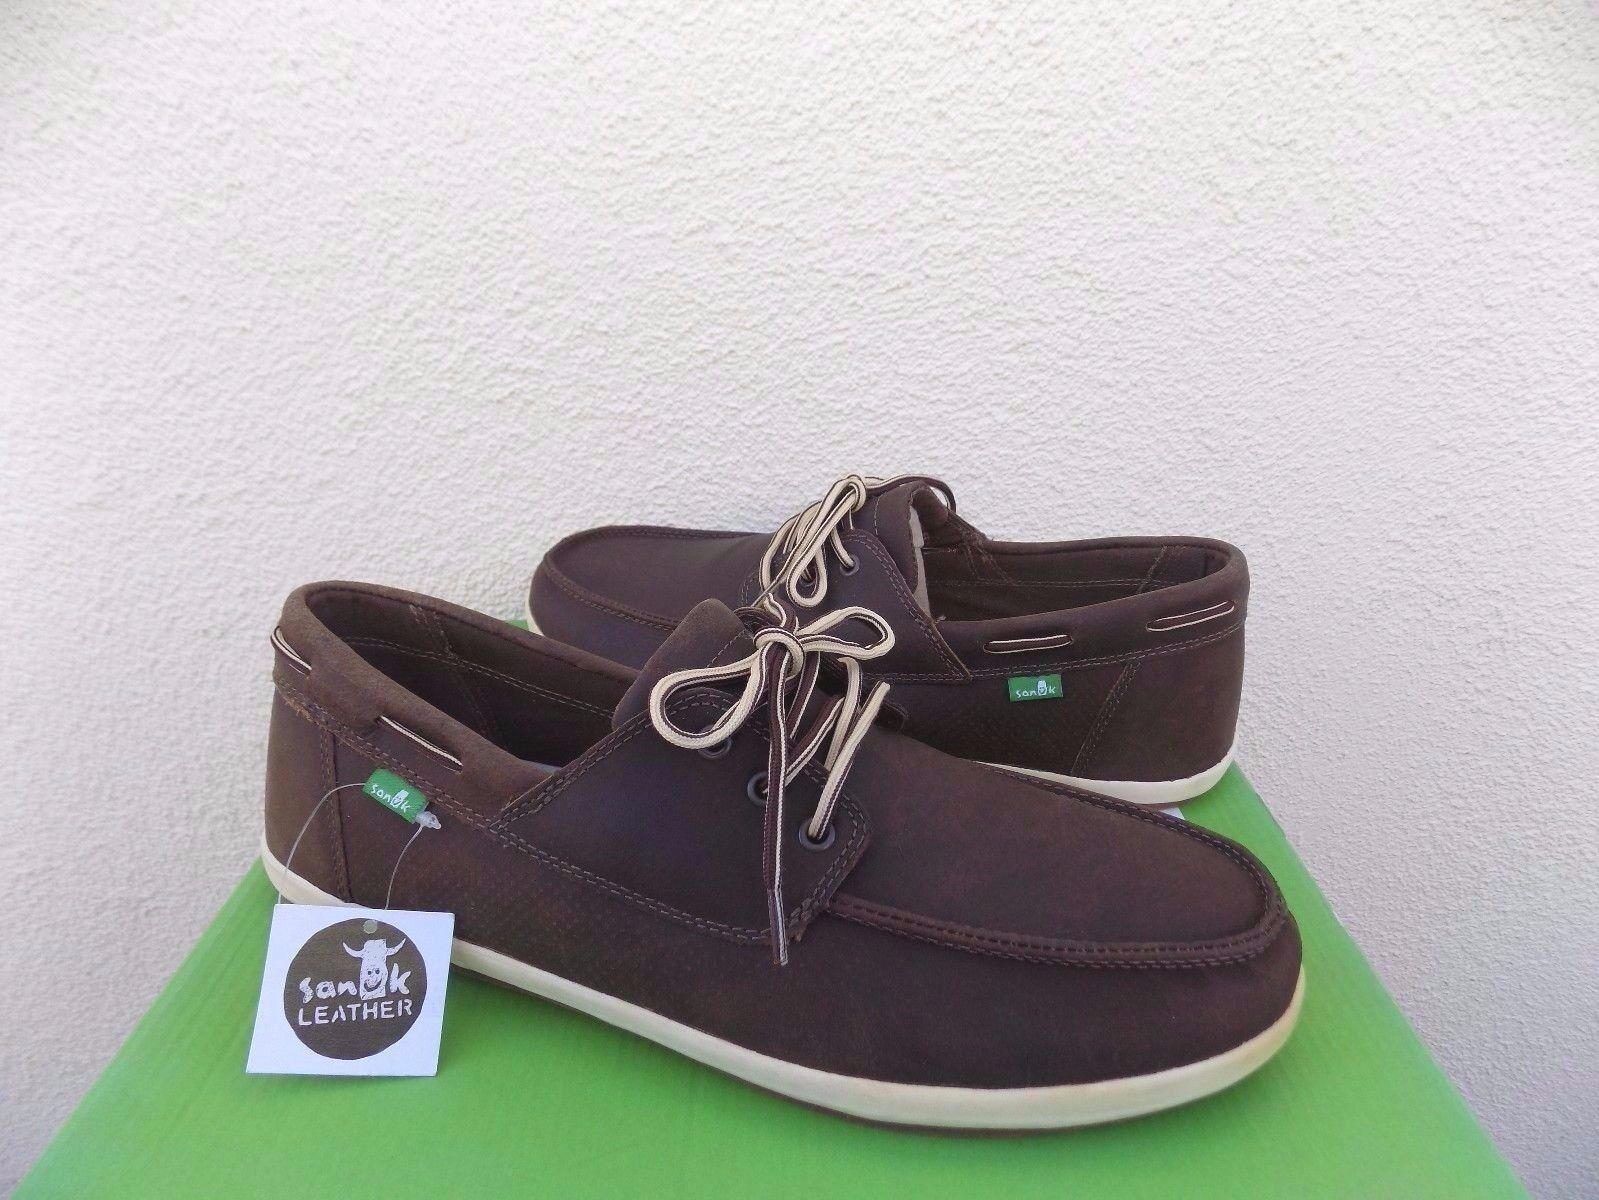 SANUK CASA BARCO DELUXE BROWN LEATHER LACE-UP BOAT Schuhe, Schuhe, Schuhe, US 8/ EUR 41 NWT 0f0d78